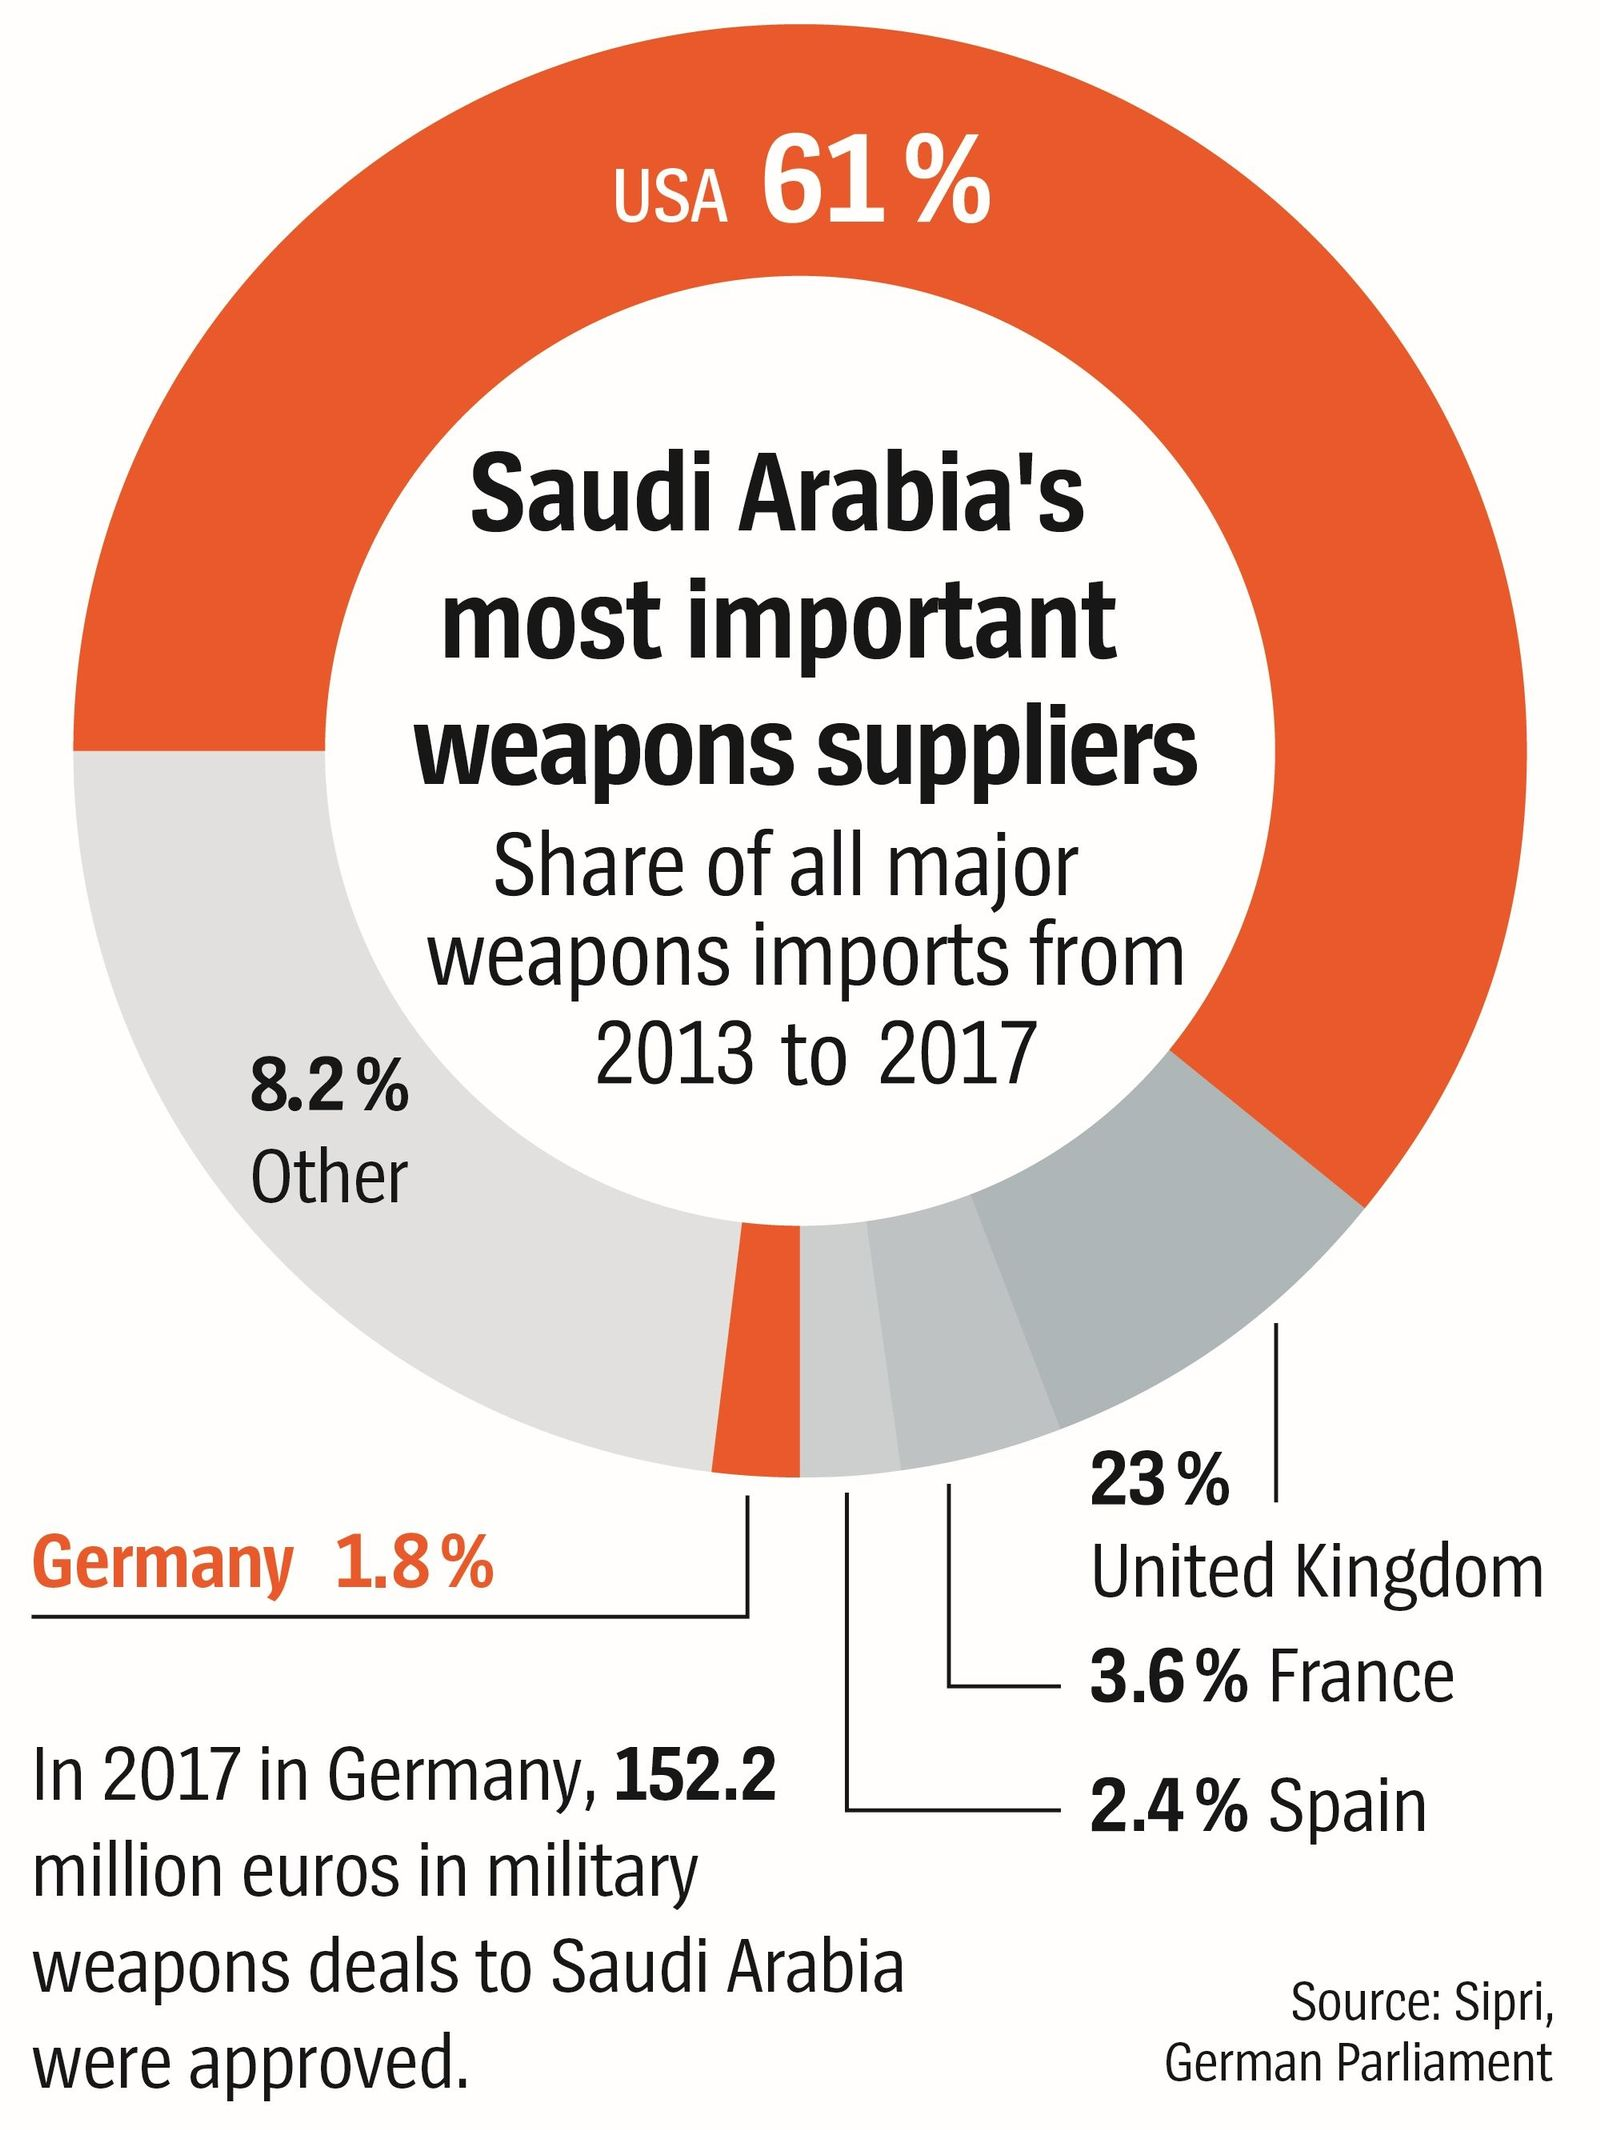 Graphic Weapon Supplier Saudi Arabia - DER SPIEGEL 43/2018 - S. 22